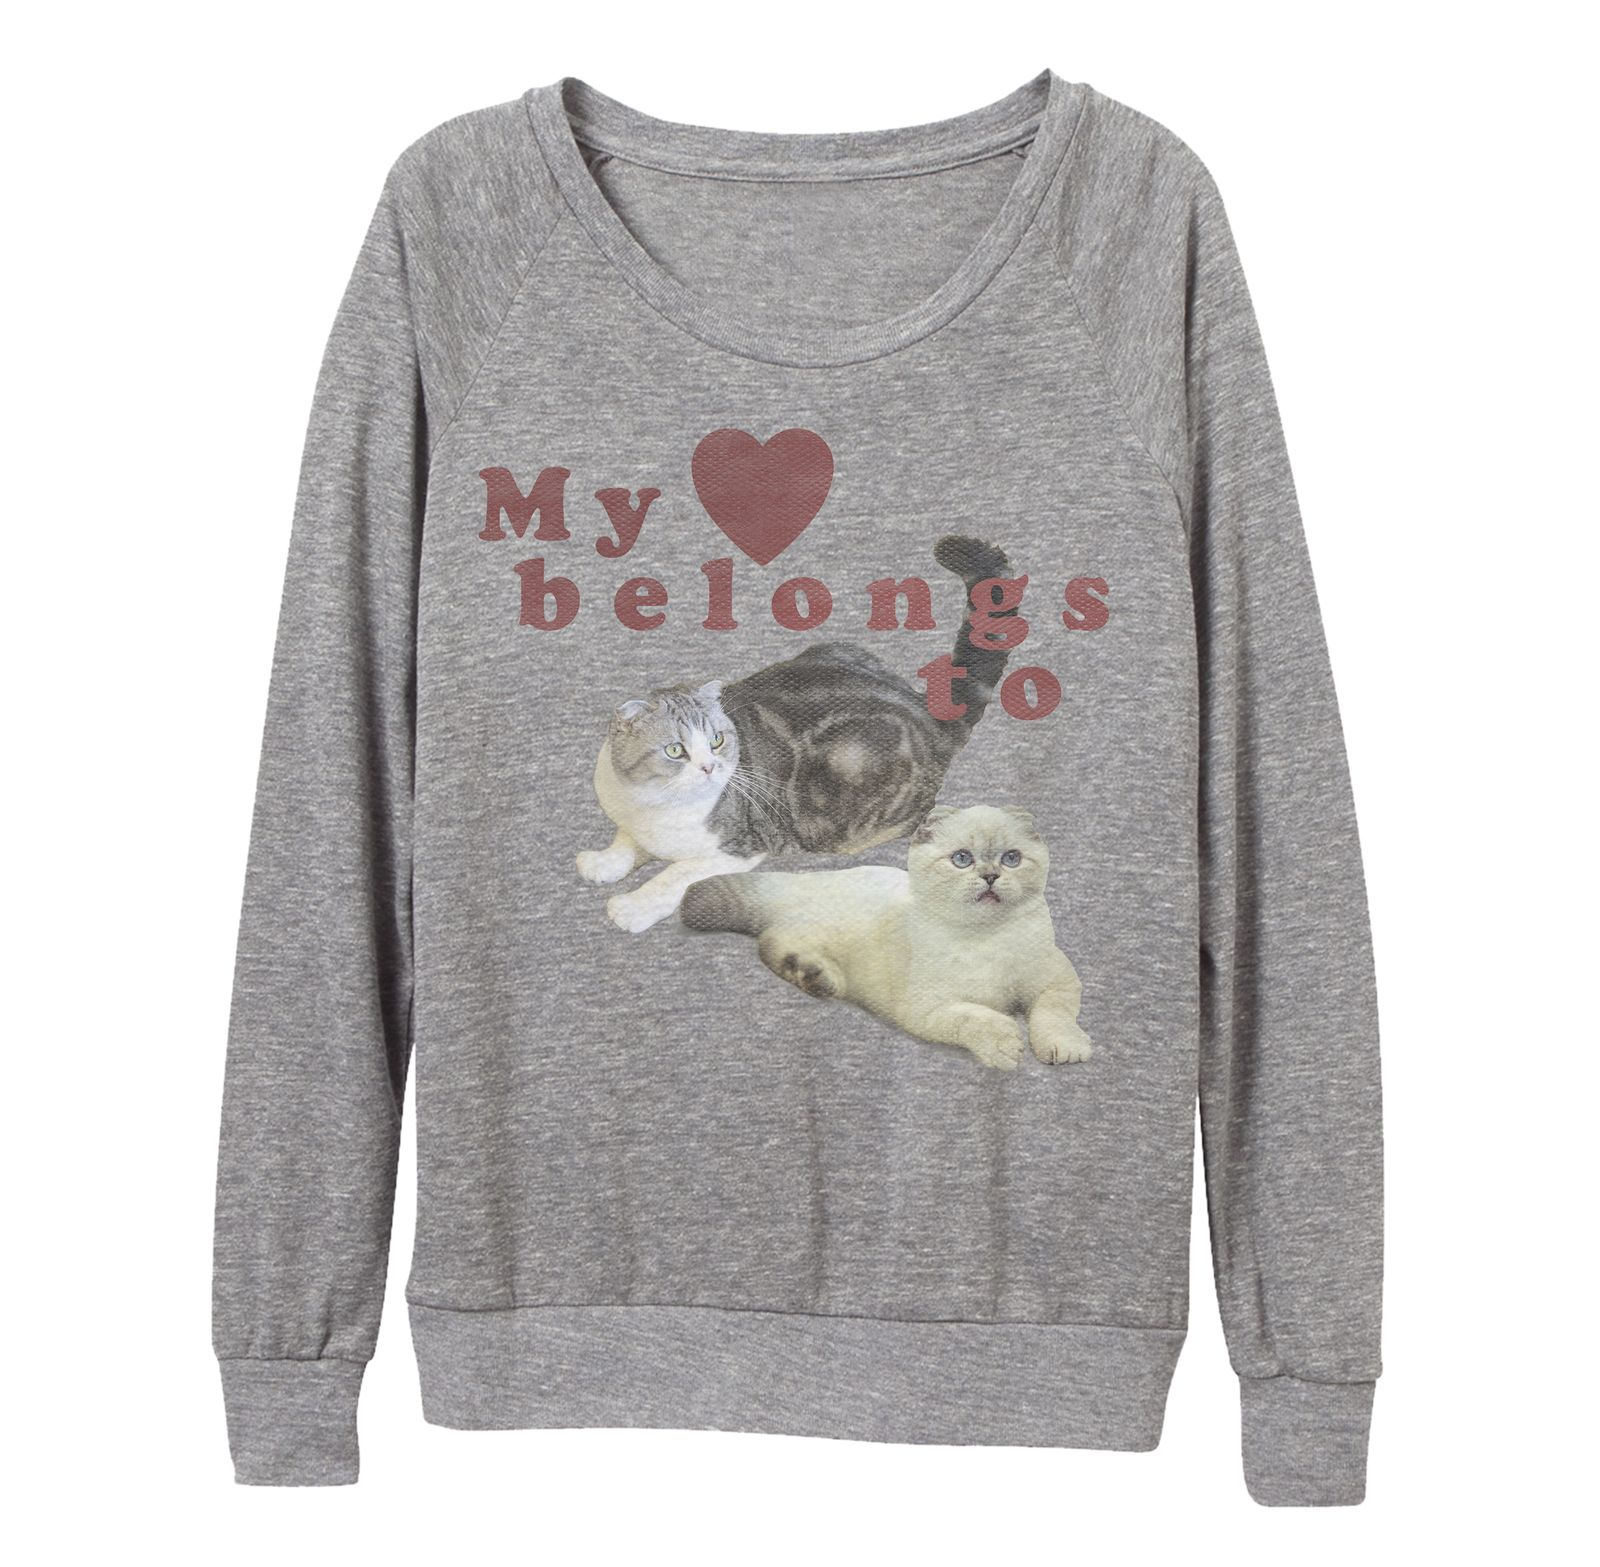 Check out the deal on Light Grey Cats Long Sleeve Shirt at